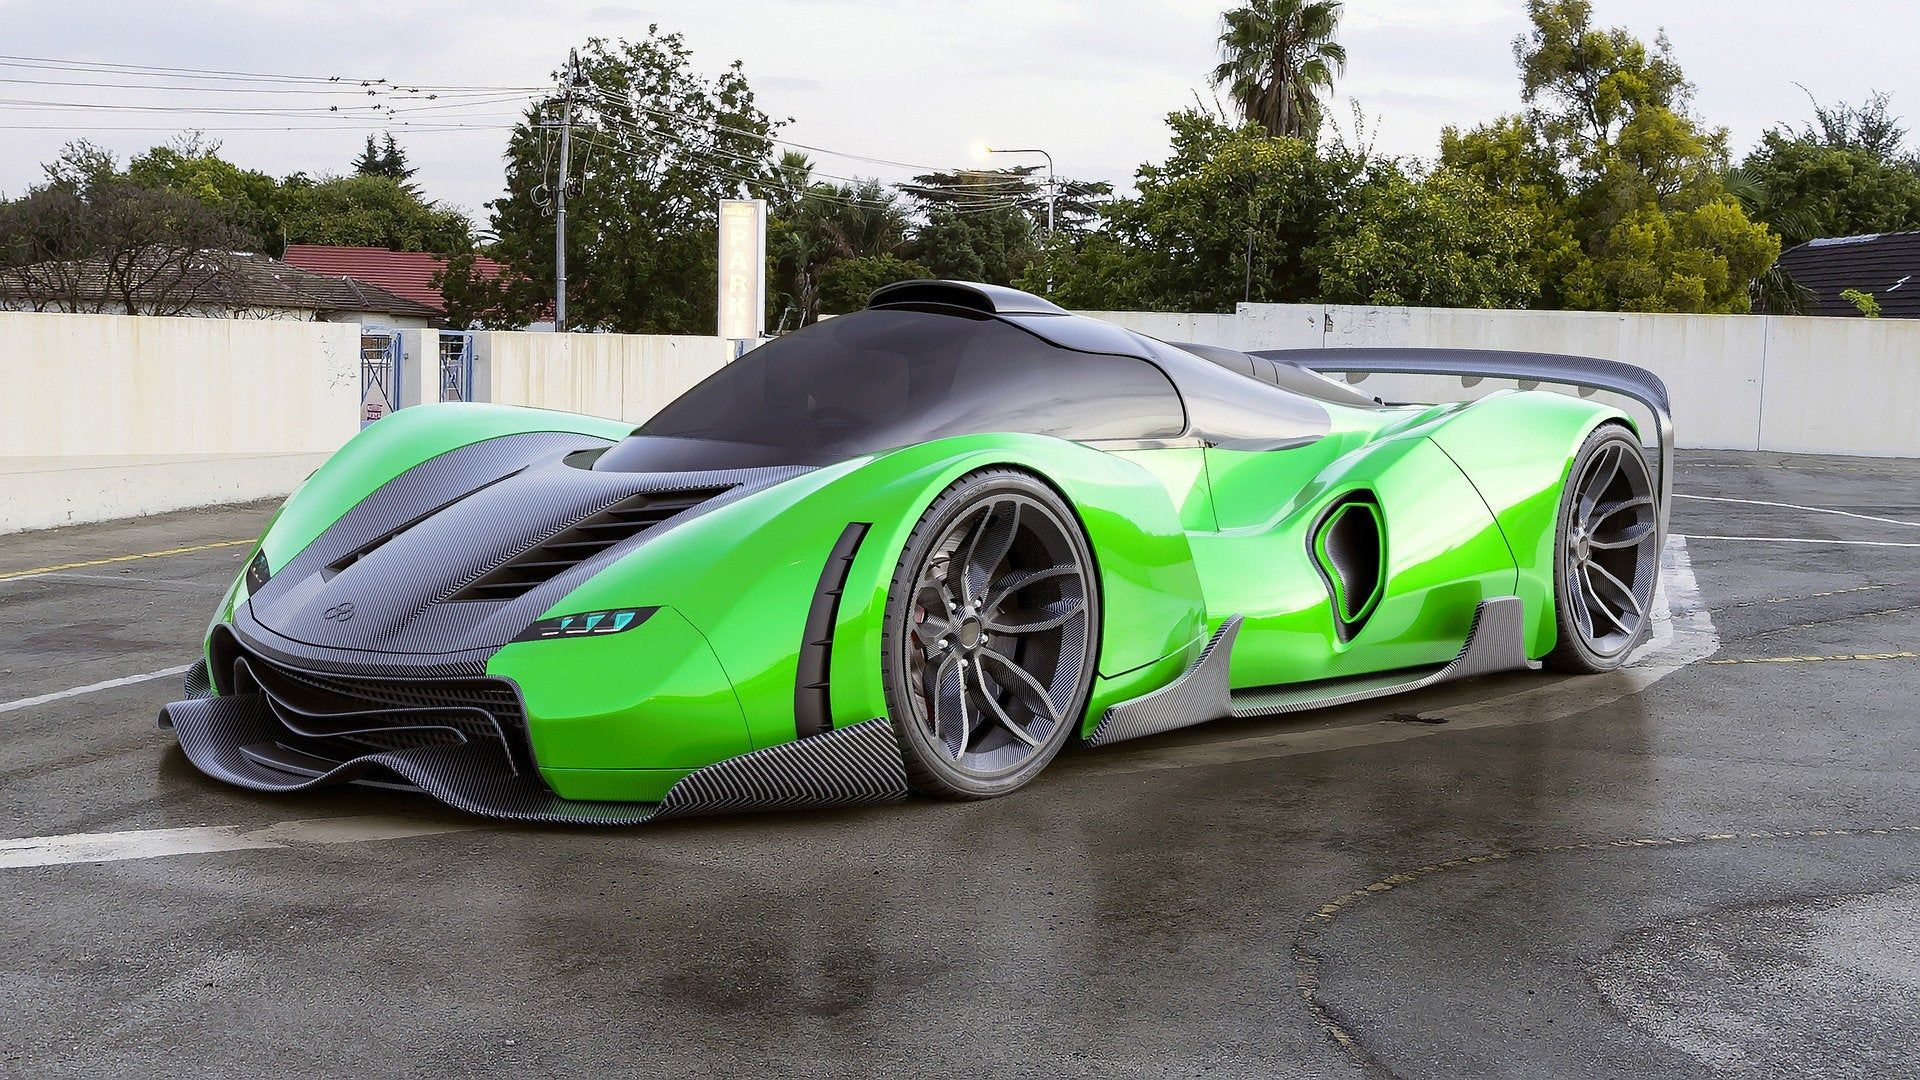 2021 Concept Car Calendar Racing Car Enthusiasts Sleek Design Cars Space Age Future Technical Advancement In 2020 Concept Cars Car Buying Car Prices